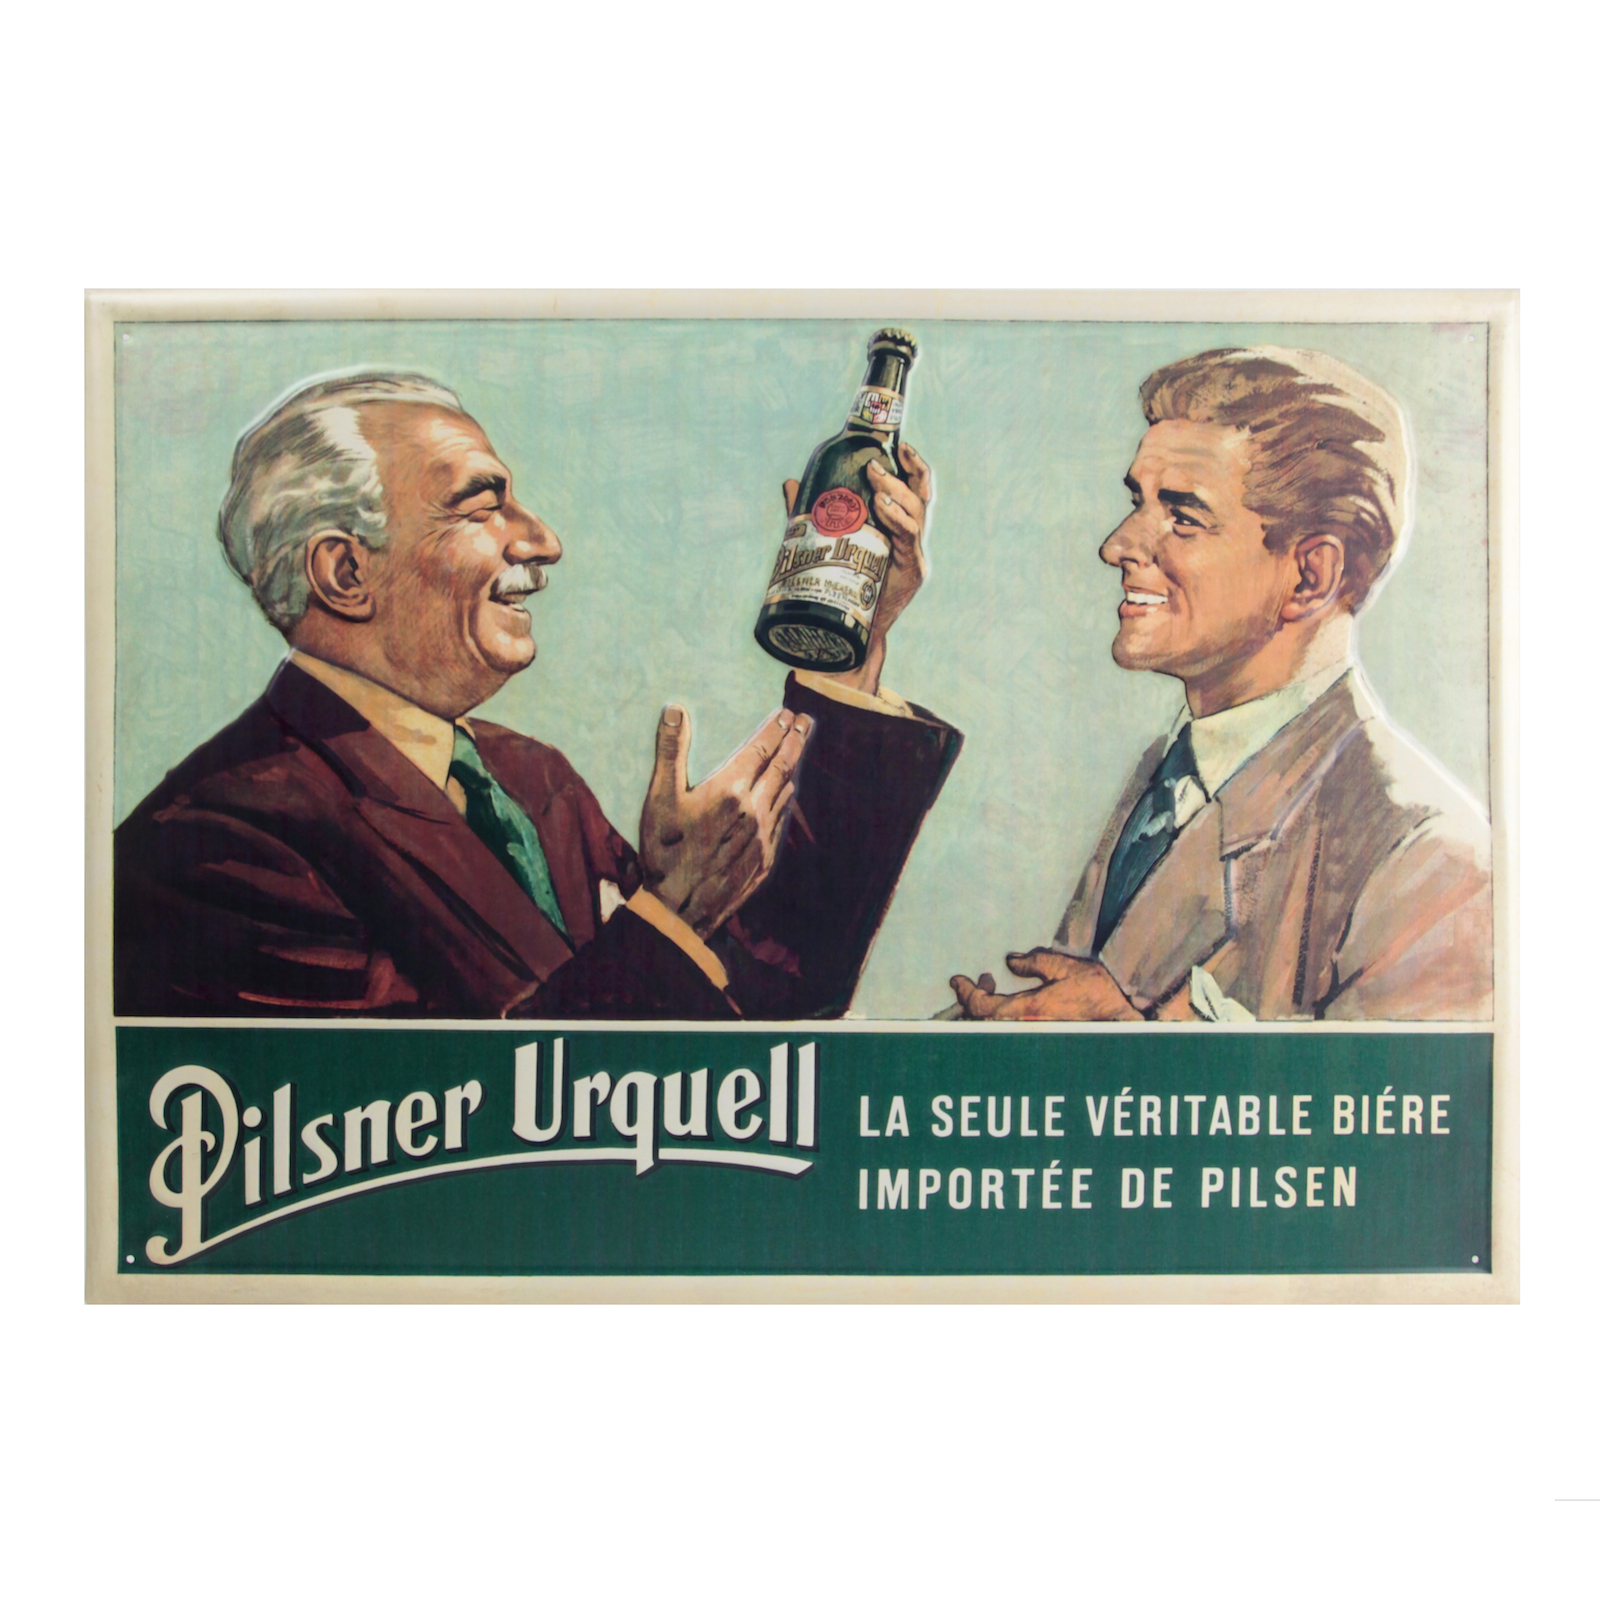 Metal sign with a historic Pilsner Urquell advertisement